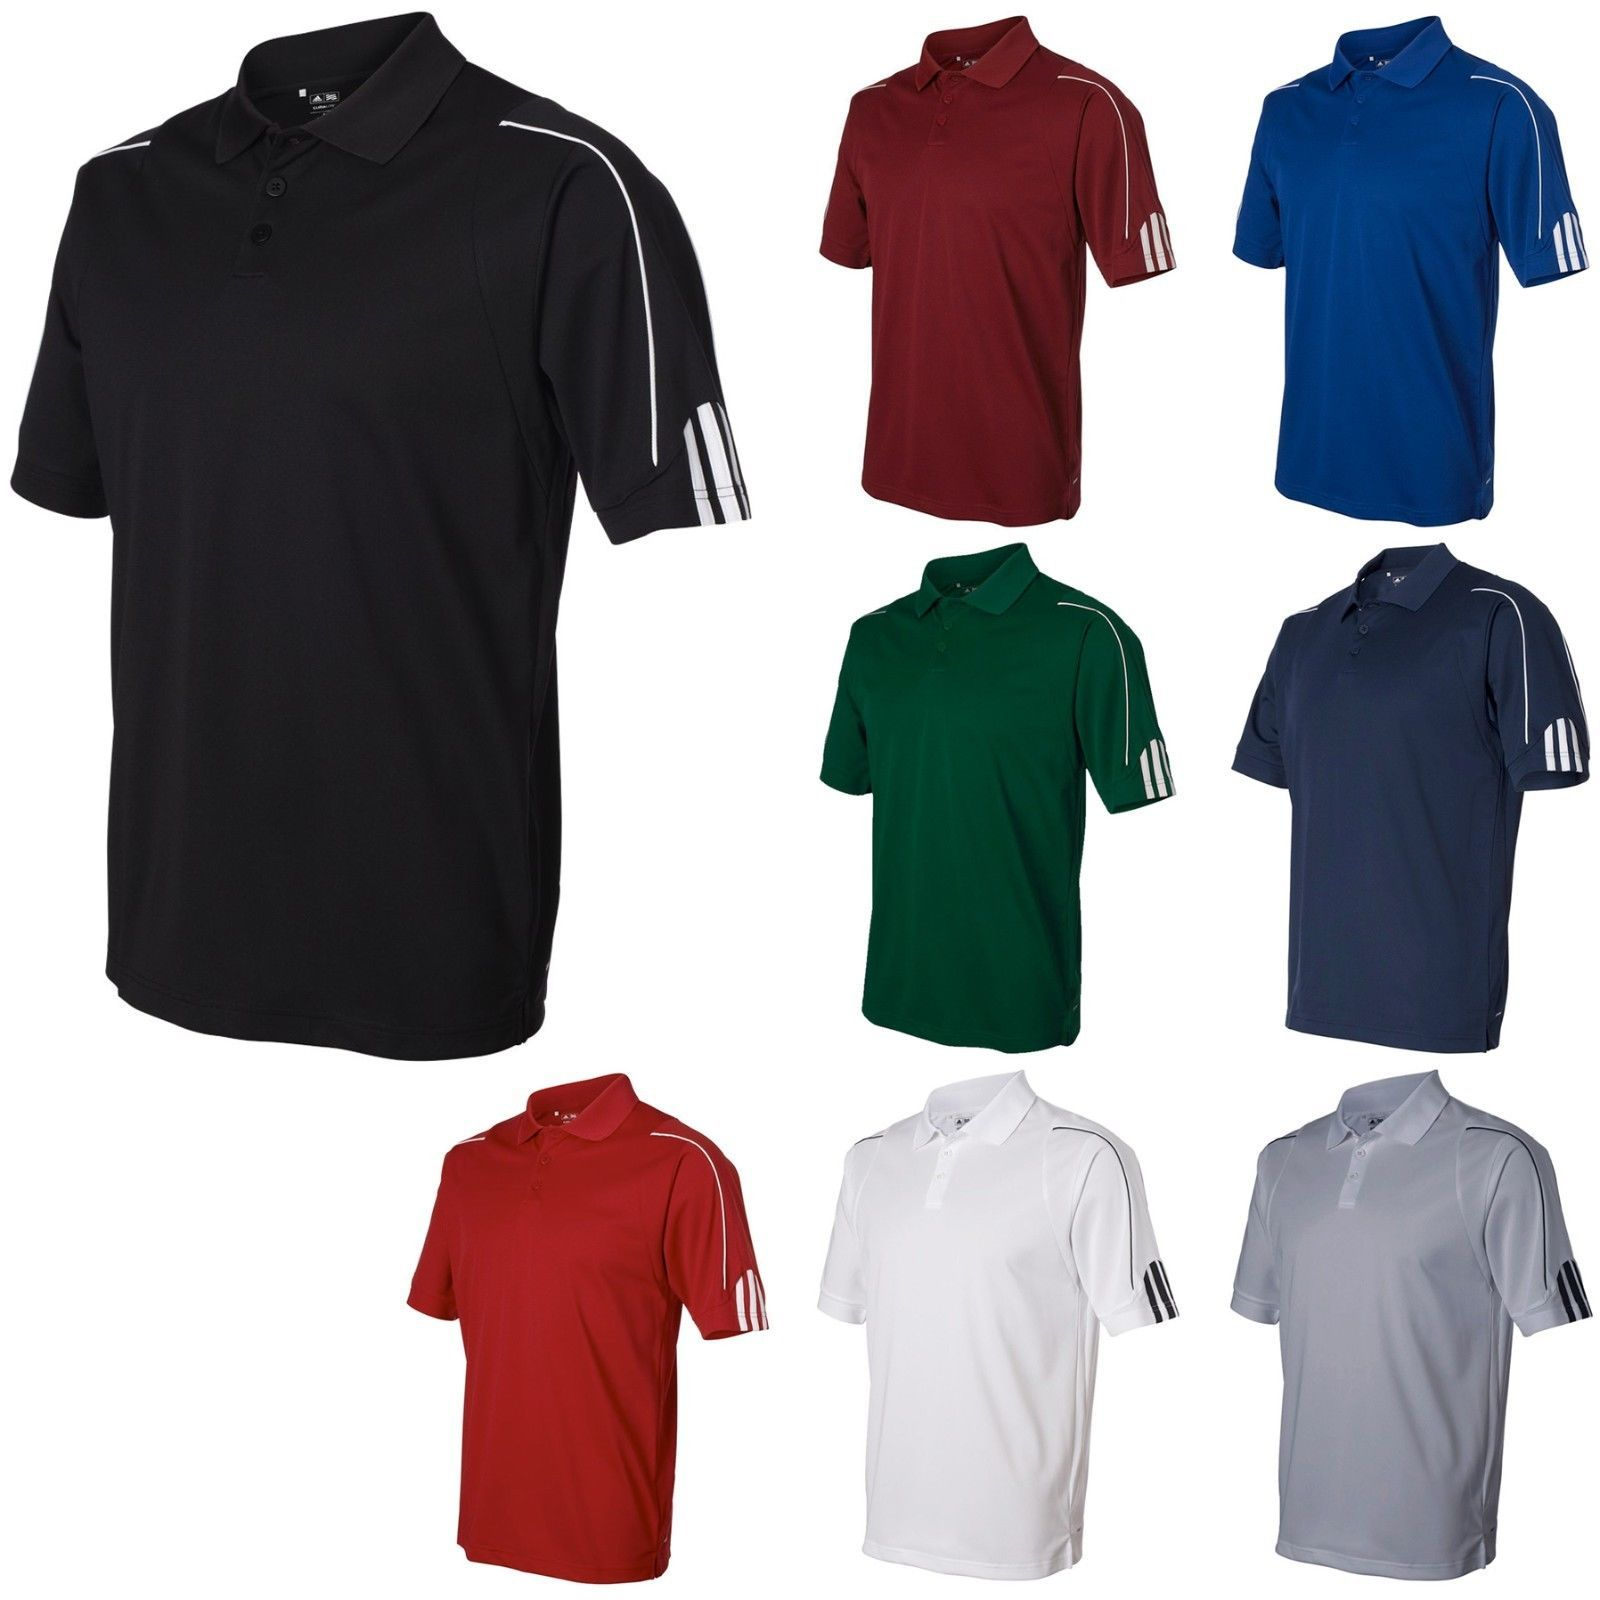 exquisite style release info on best choice Adidas Mens Golf Shirt S-3XL ClimaLite Three-Stripe Cuff ...